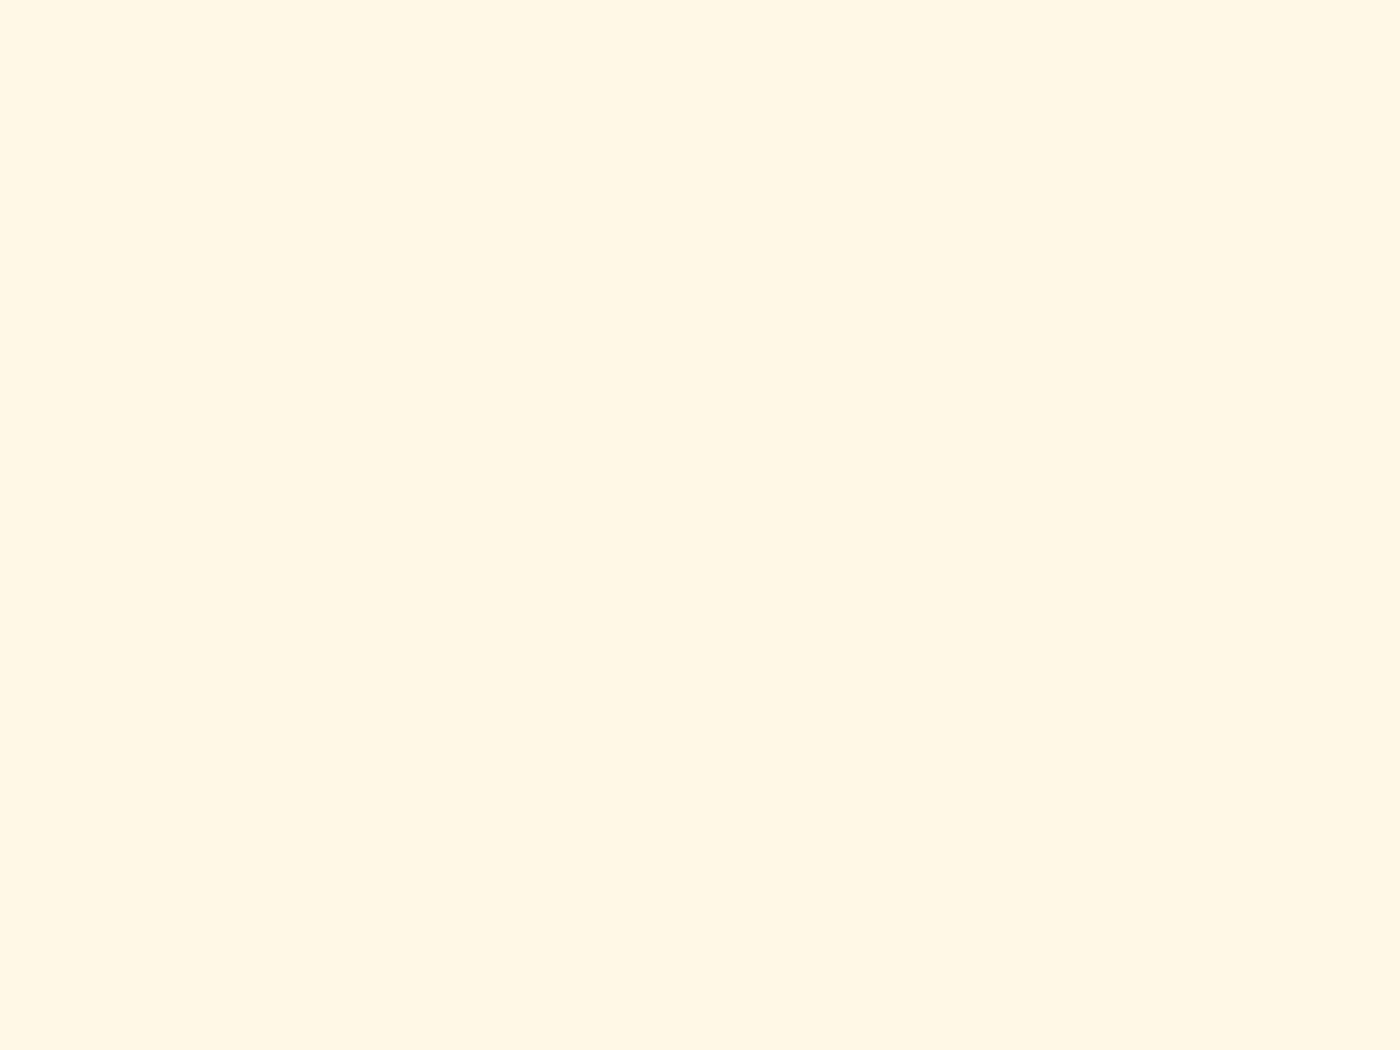 1400x1050 Cosmic Latte Solid Color Background